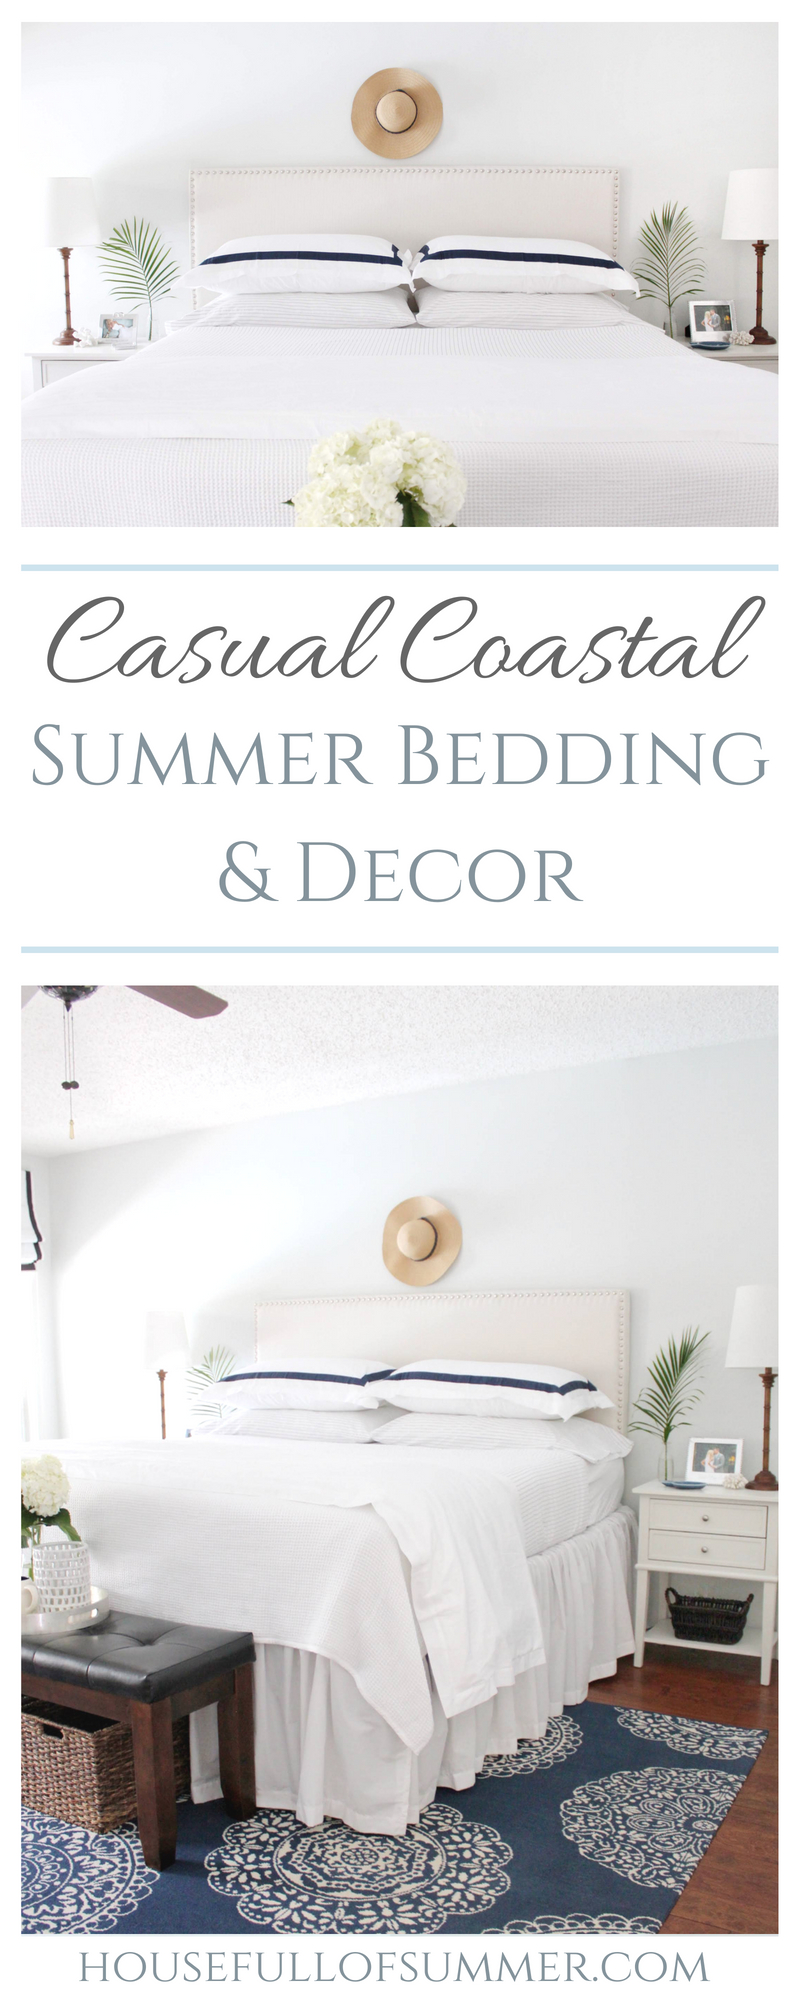 Casual Coastal Summer Bedding | House Full of Summer - nautical and coastal vibes in a blue and white bedroom. Boll & Branch duvet and navy ticking sheets, hotel bedding, beige nailhead headboard upholstered, extra long drop bed skirt, bamboo lamps, tropical accents, navy medallion rug. Sherwin Williams Fleur de Sel paint color, percale sheets, #housefullofsummer #bollandbranch